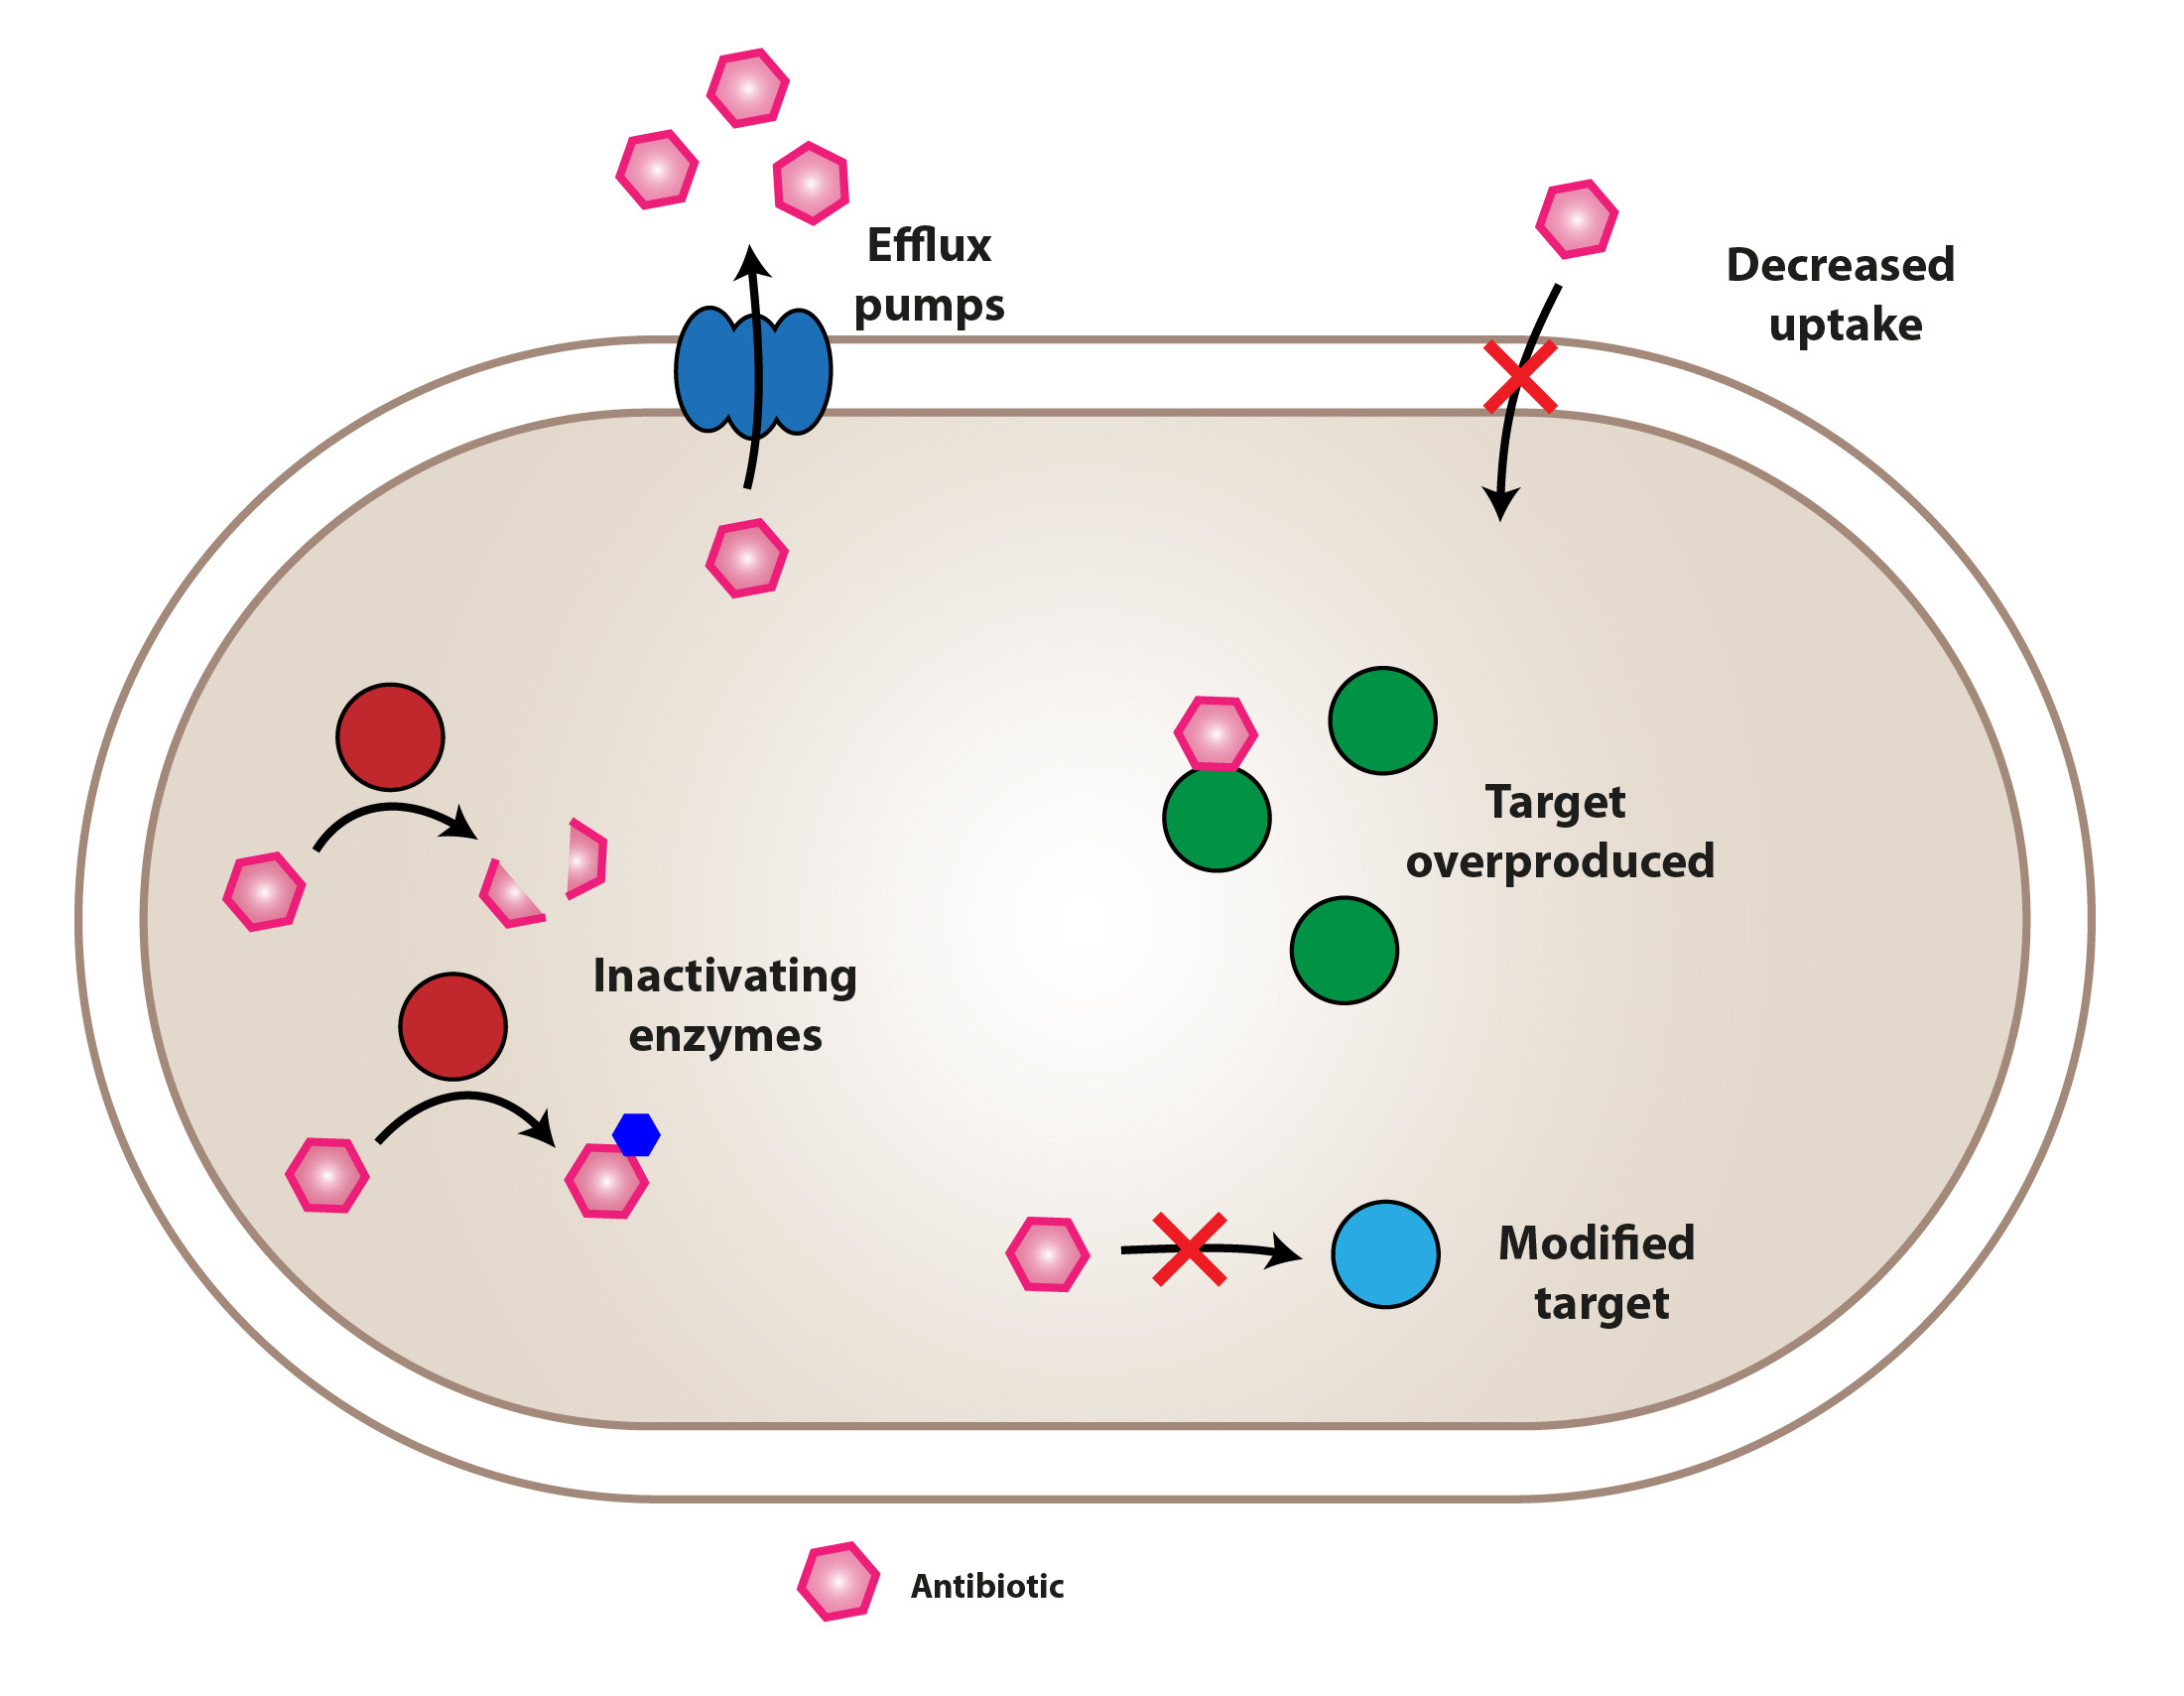 A picture of a bacterium with different antibiotic resistance mechanisms illustrated